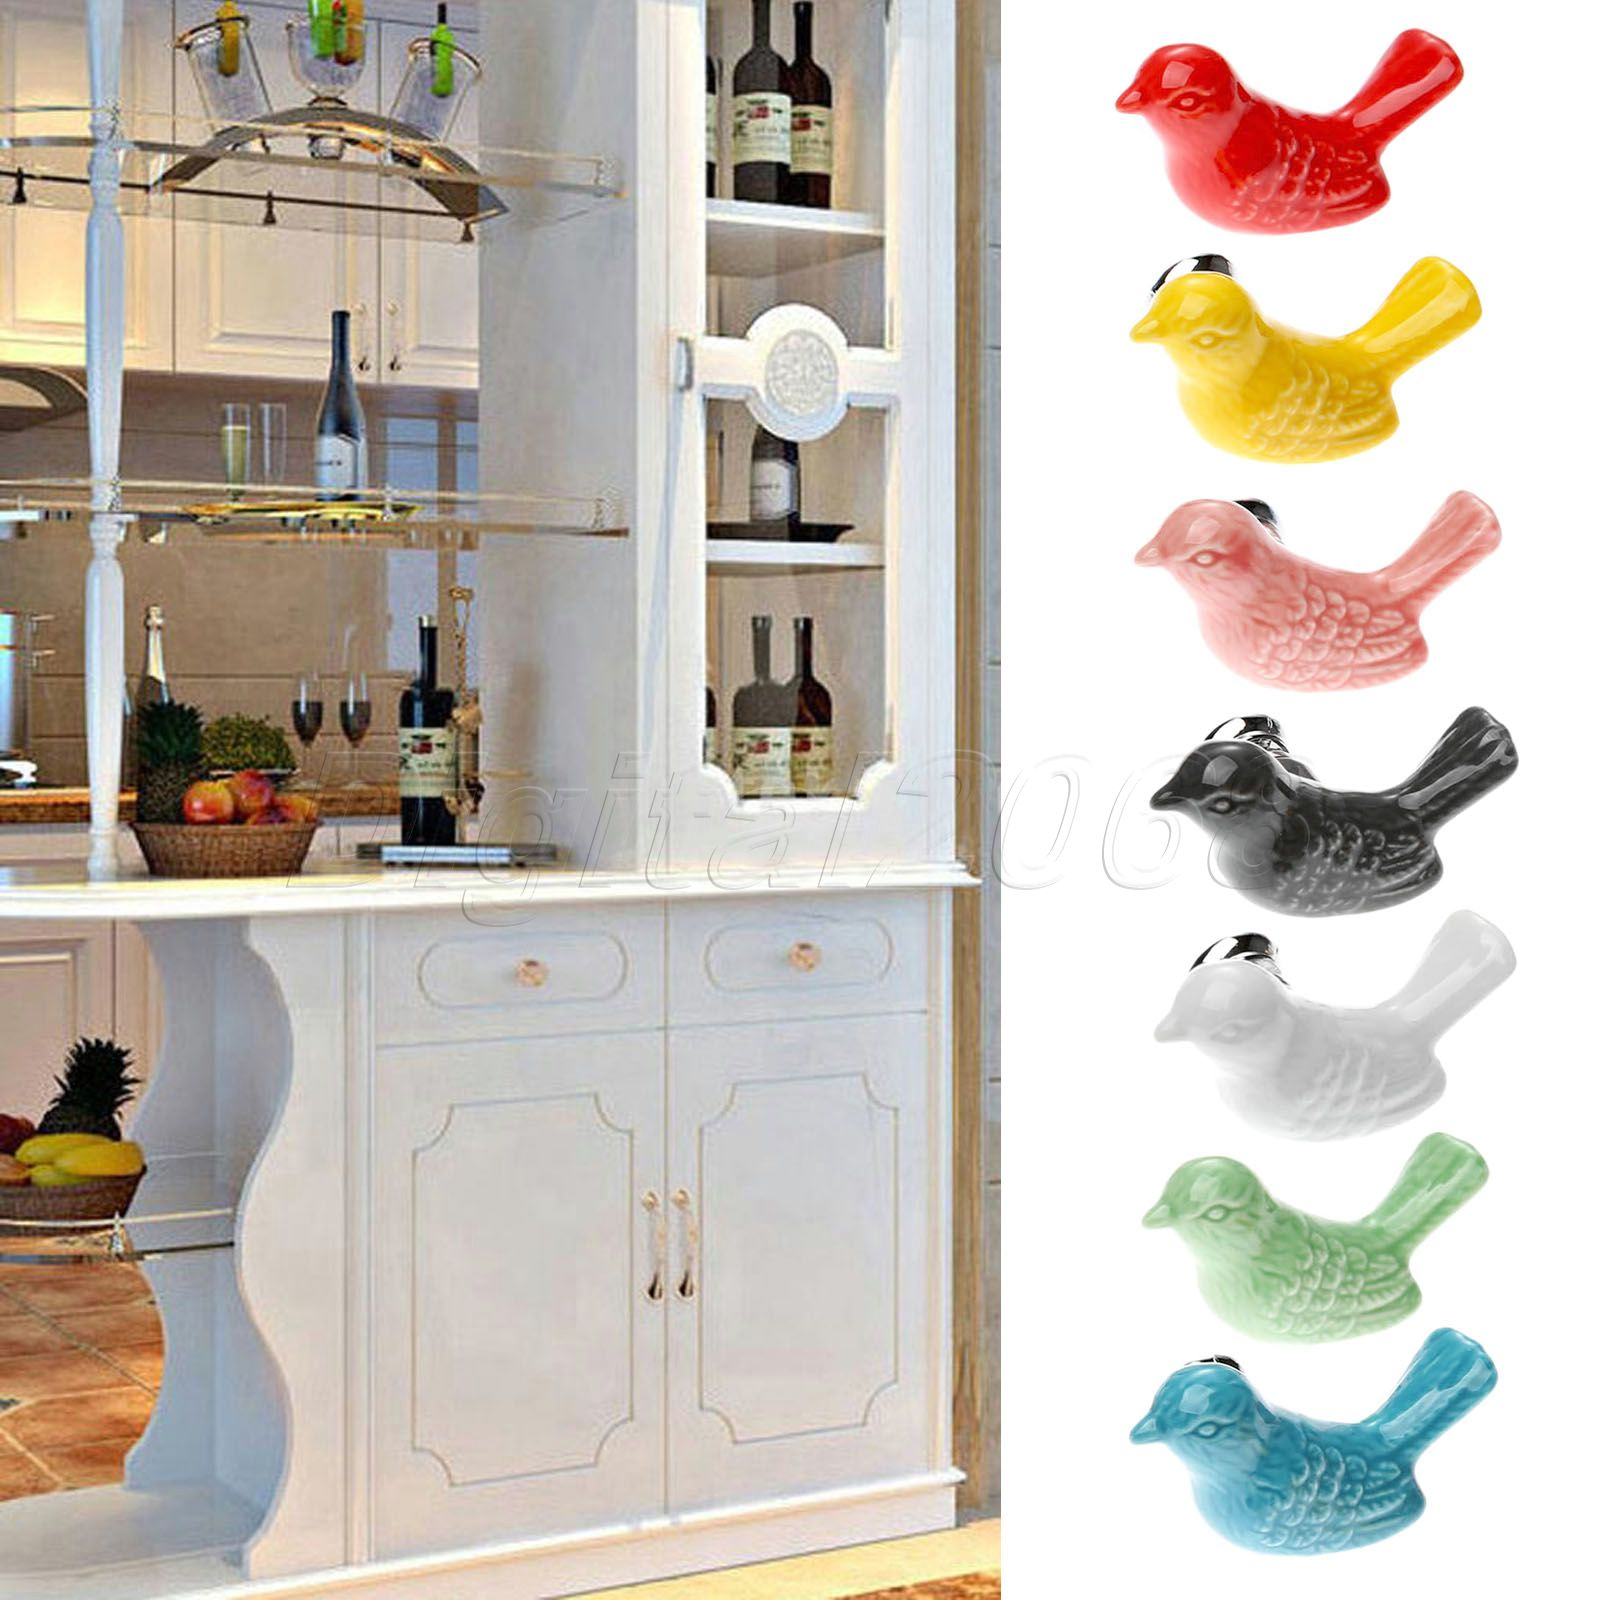 New Hot Ceramic Bird Kitchen Cabinet Cupboard Door Handles Drawer Knobs Wardrobe Pulls Kitchen Furniture Home Pull Handle dsha hot 10x soft close kitchen cabinet door hinge hydraulic slow shut clip on plate